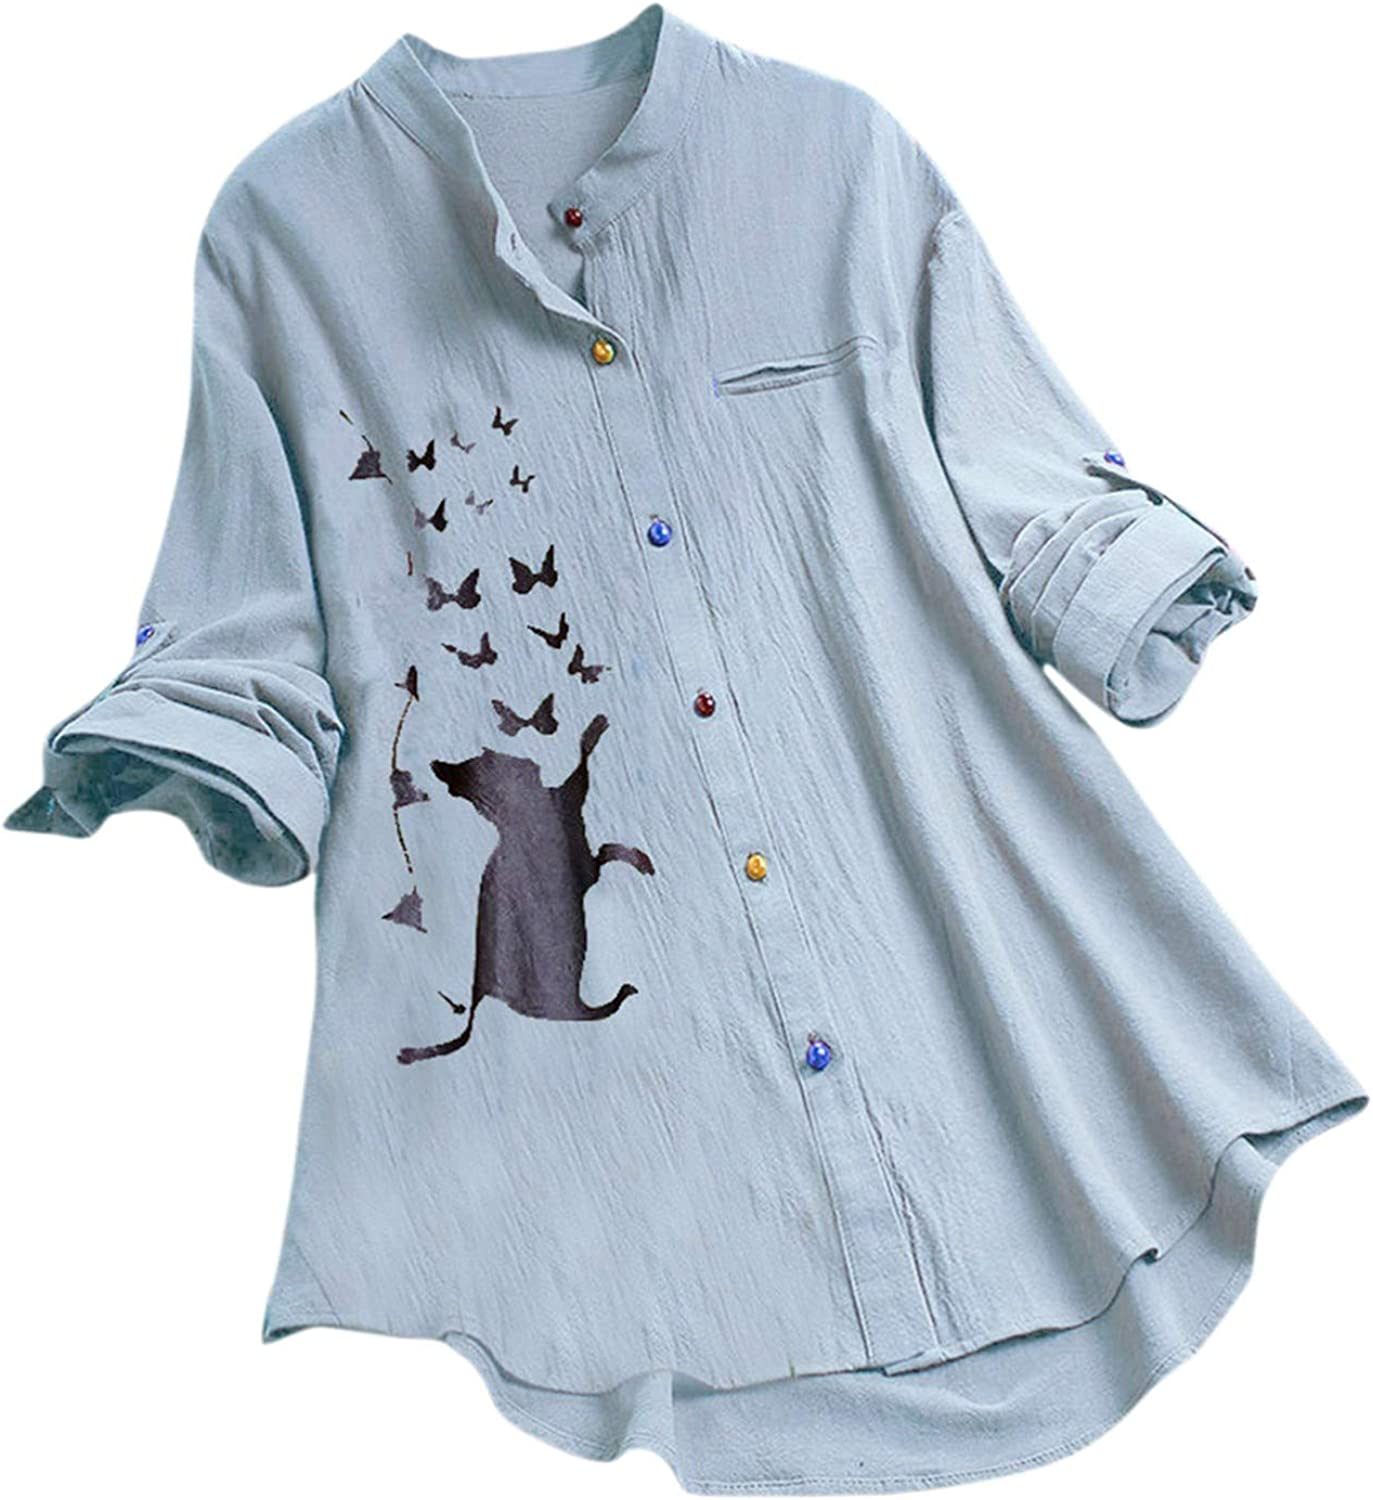 Funny Cat Print Women Shirts Autumn Button Comfy Casual Shirt Blouses Oversized Home Office Shirt with Pockets